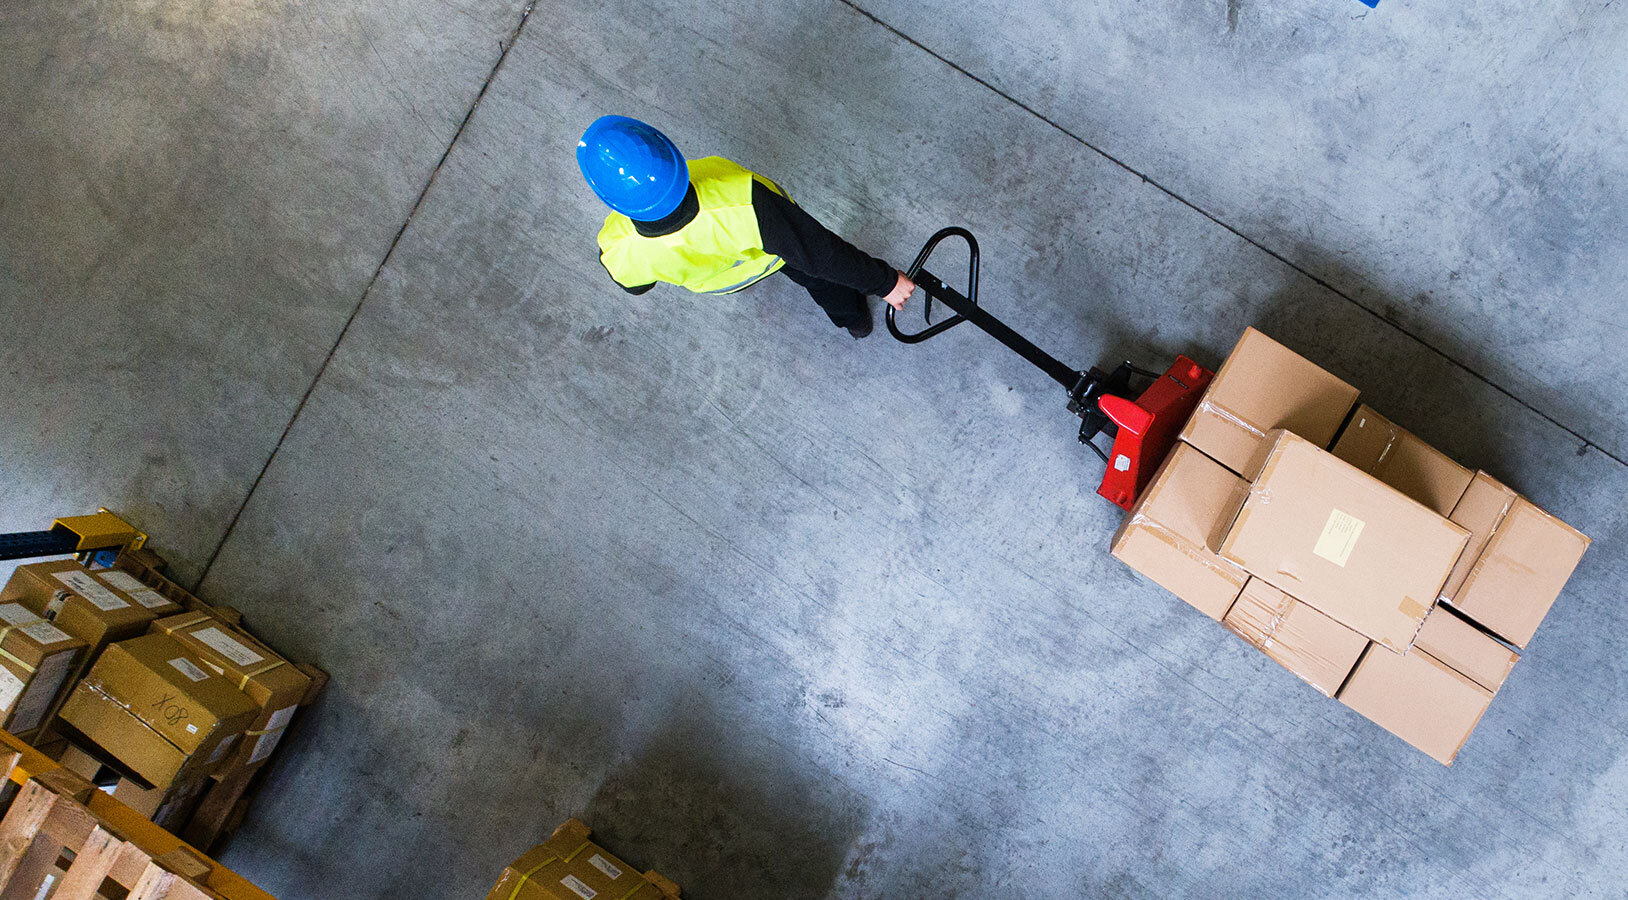 View from above of a person pulling boxes in a warehouse.